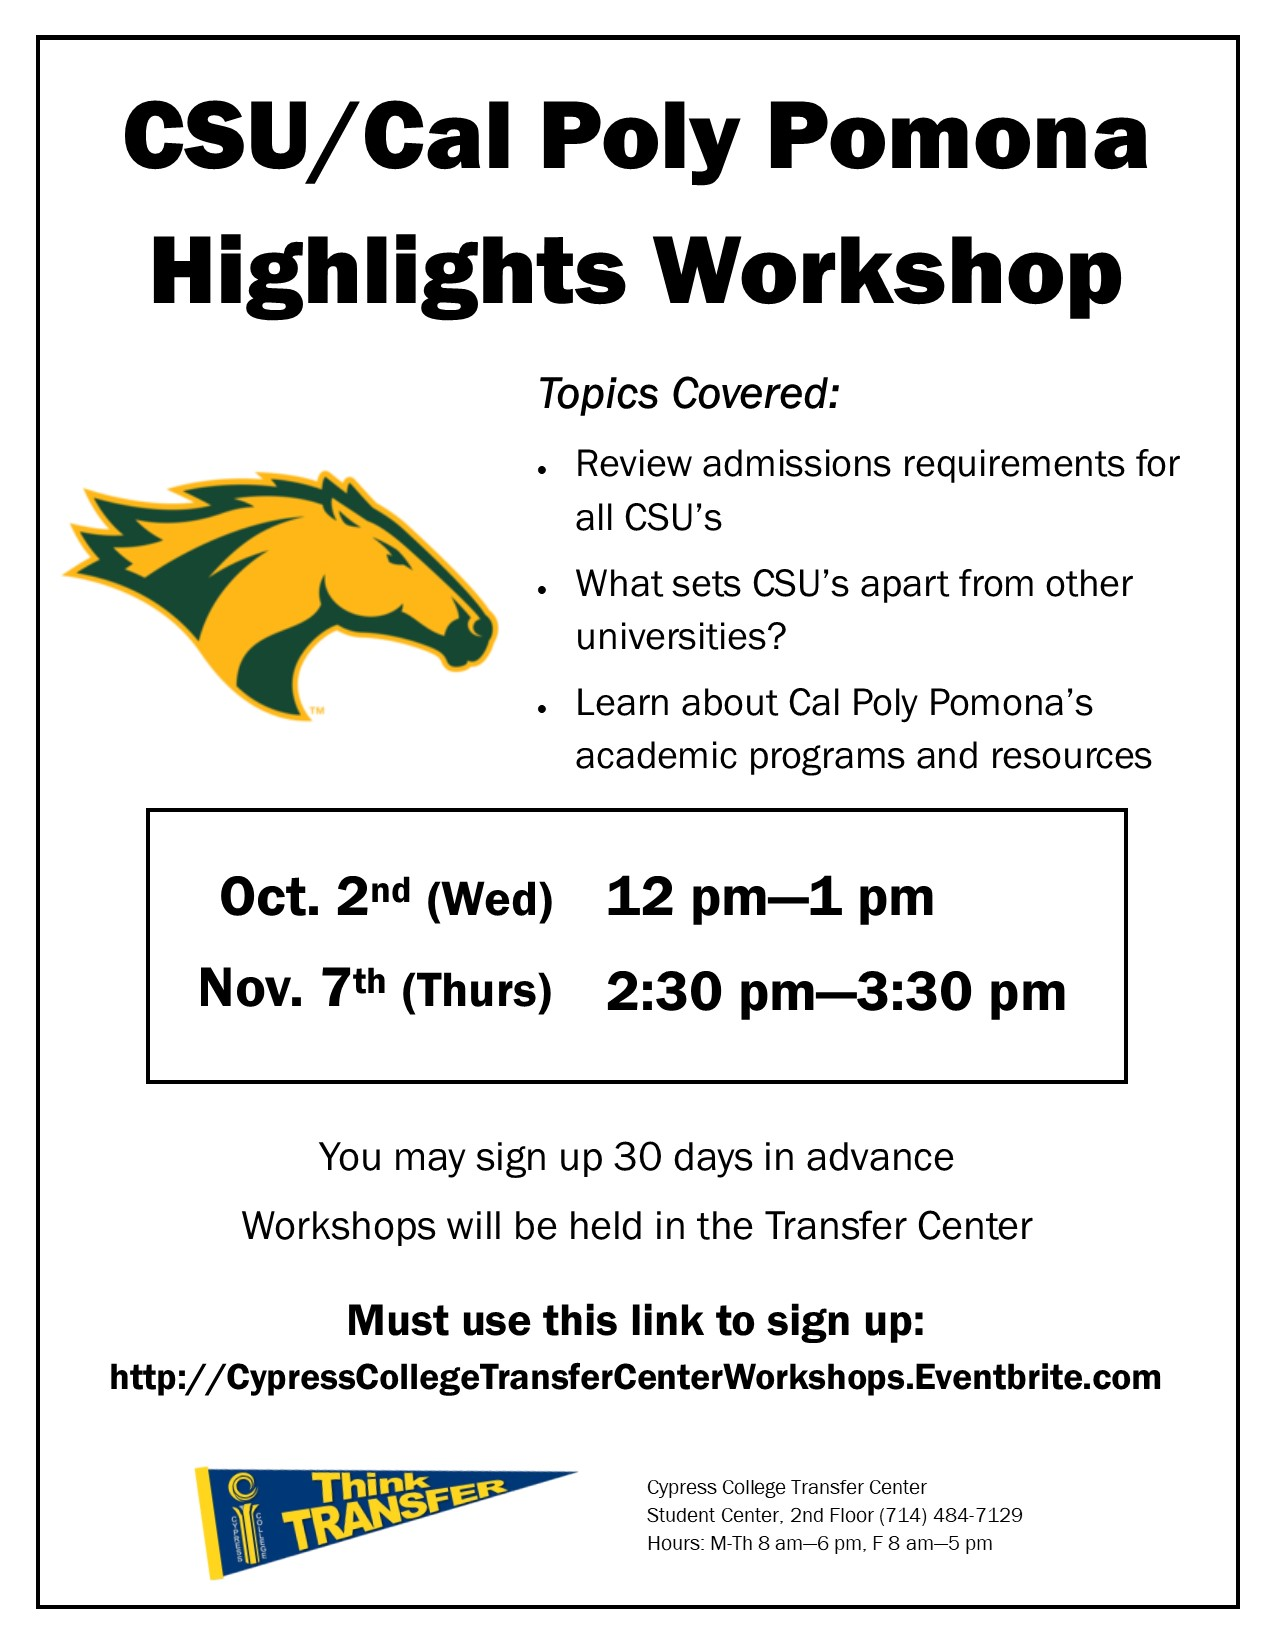 2019 CSU/Cal Poly Pomona Highlights Workshop dates and times